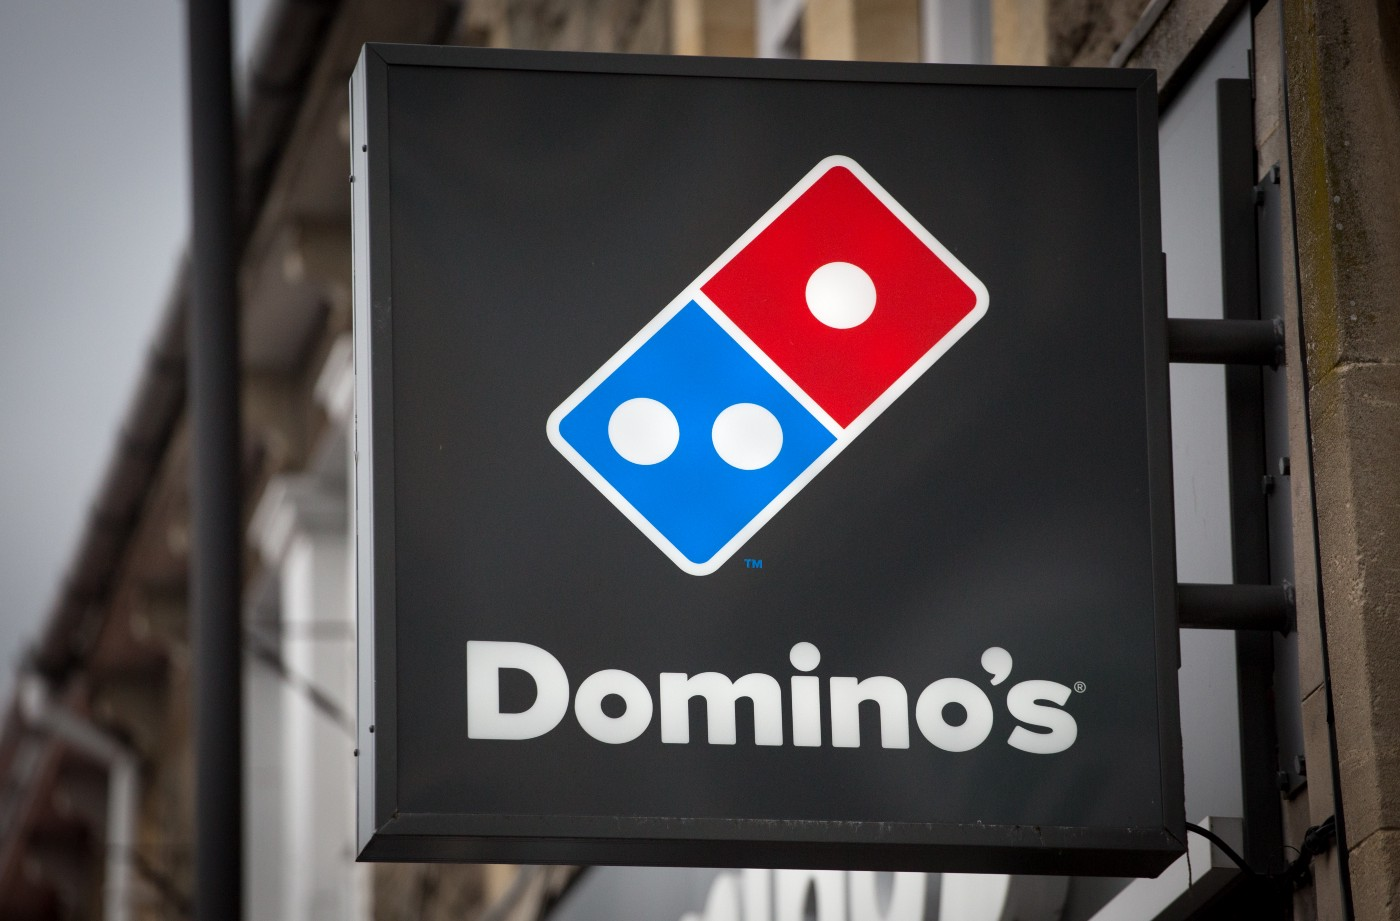 A photo of the Domino's logo for a store.